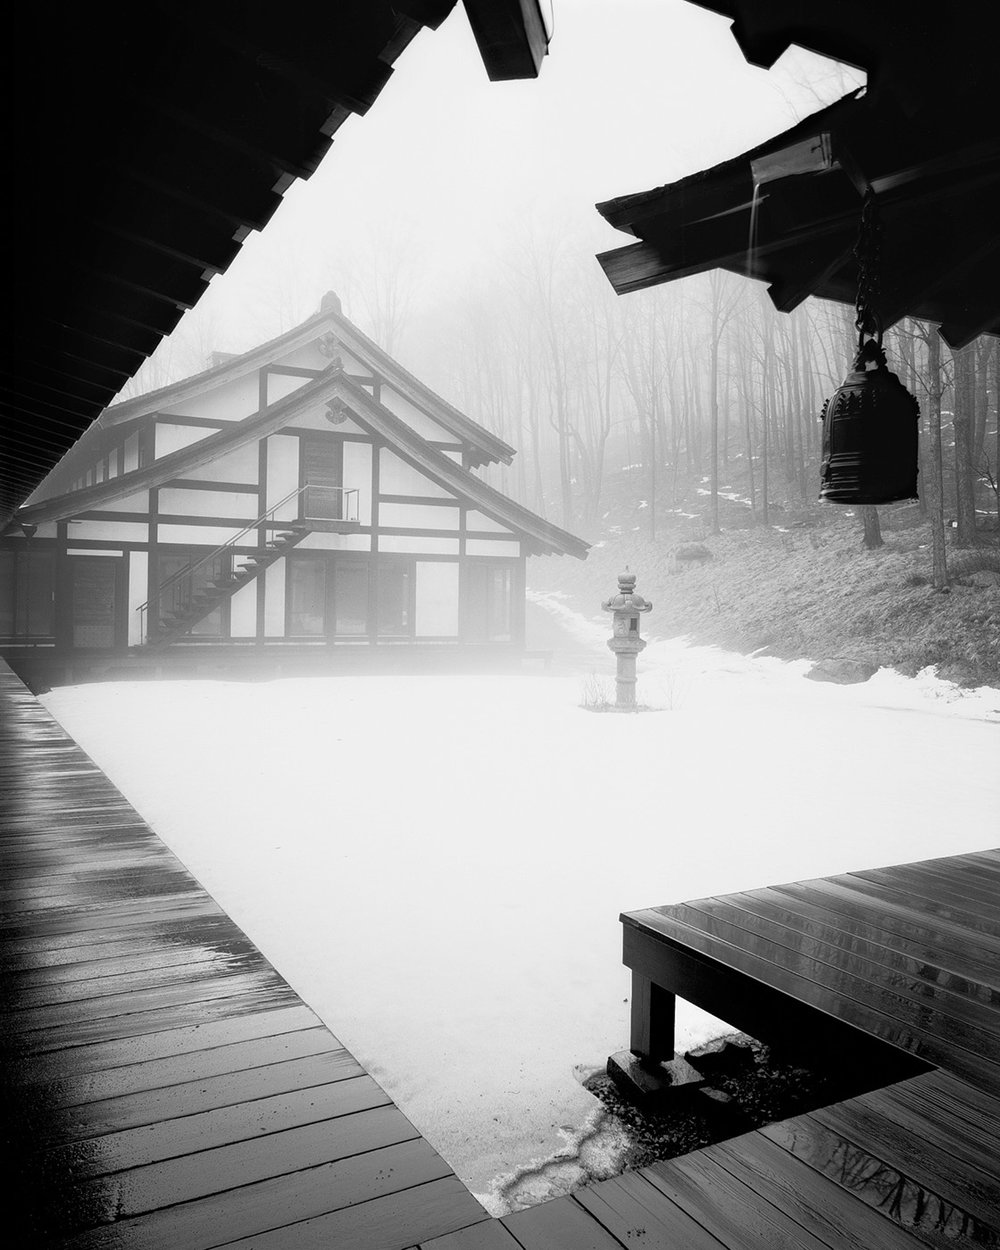 Dai Bosatsu Zen Monastery, Livingston Manor, New York